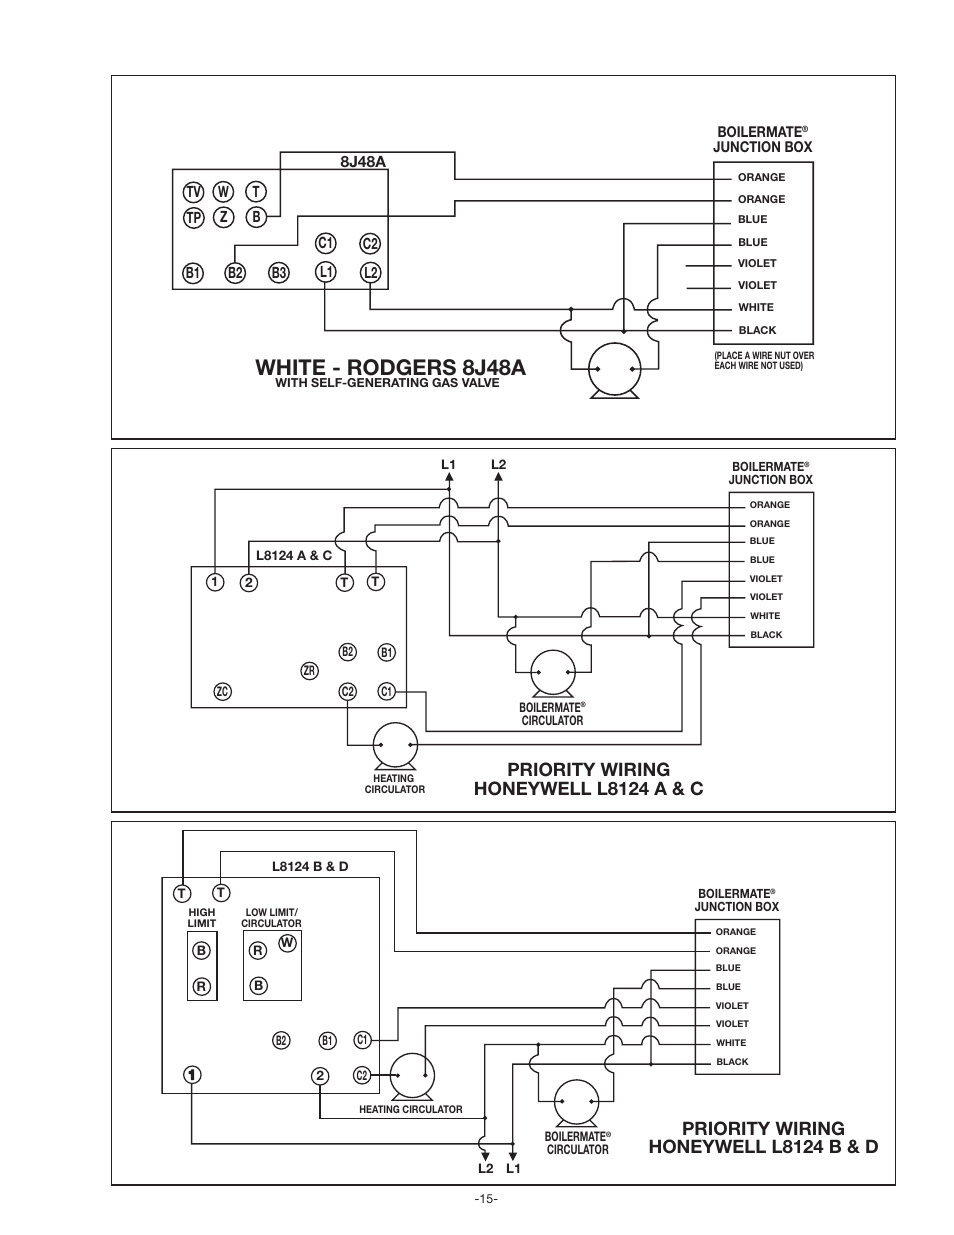 medium resolution of amtrol wiring diagram wiring diagram expert amtrol smart control wiring diagram